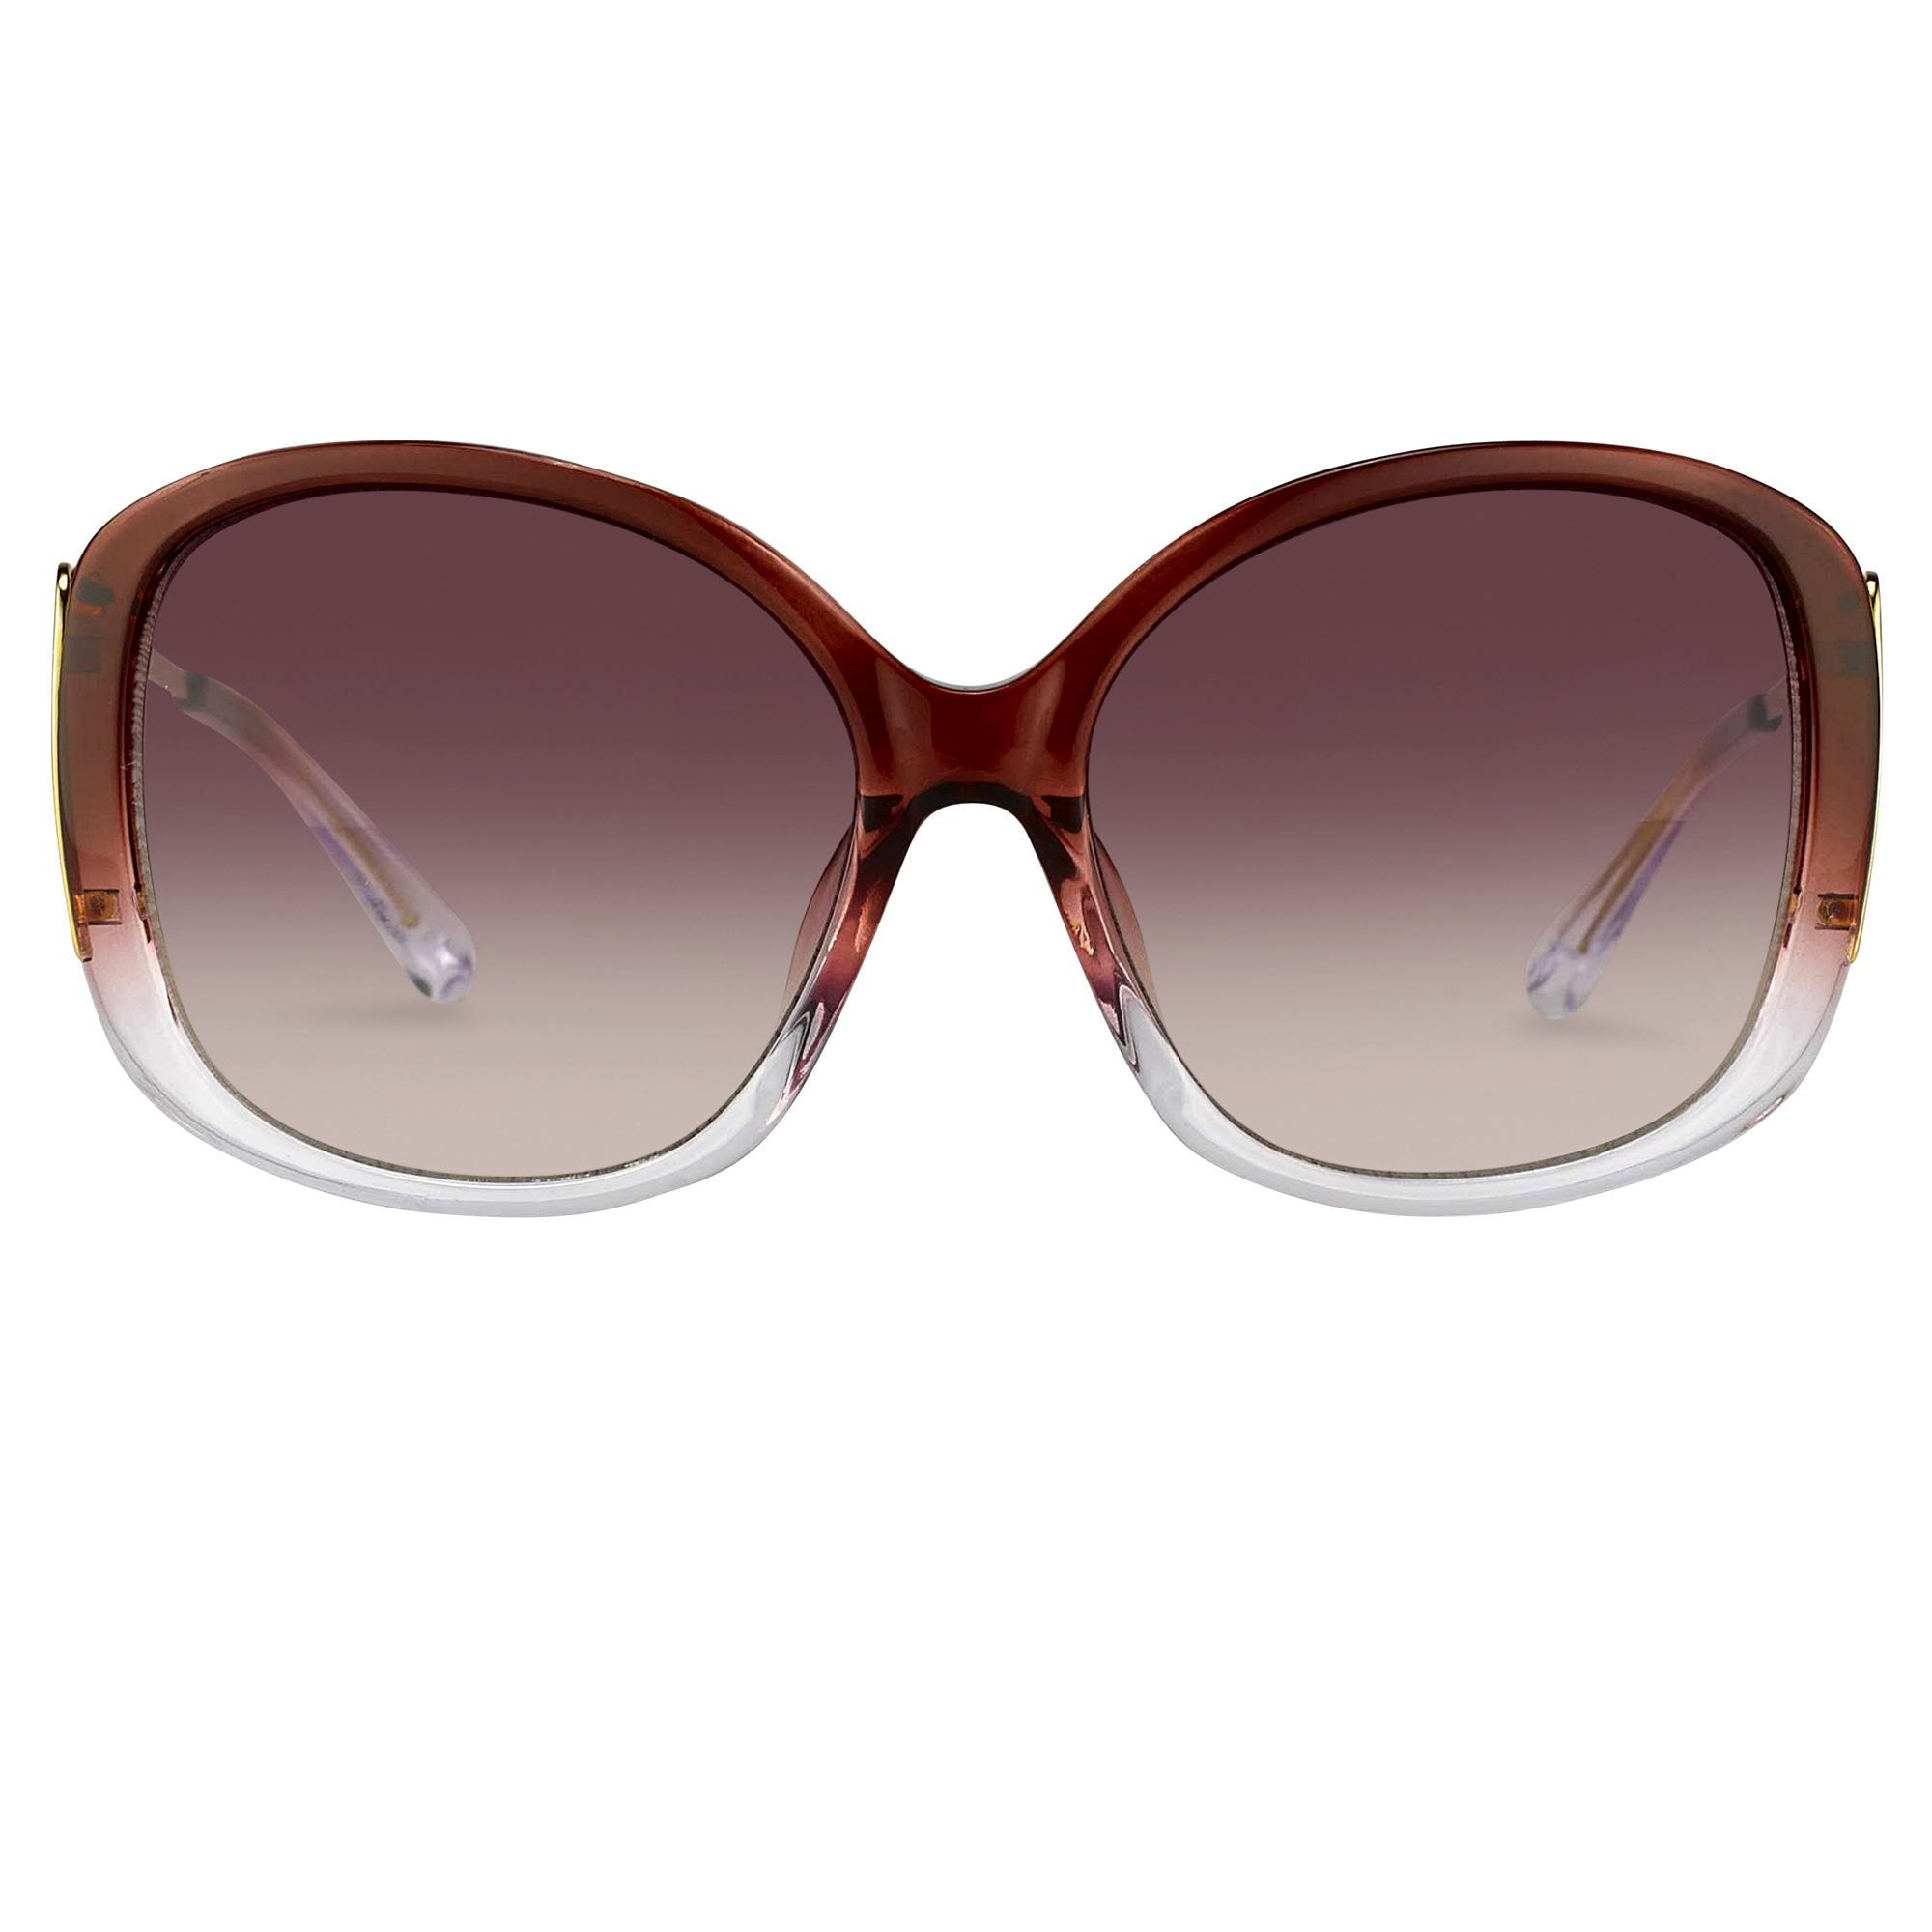 Prabal Gurung Sunglasses Oversized Female Maroon To Clear Frame Category 2 Red Gradient Lenses PG23C4SUN - Watches & Crystals